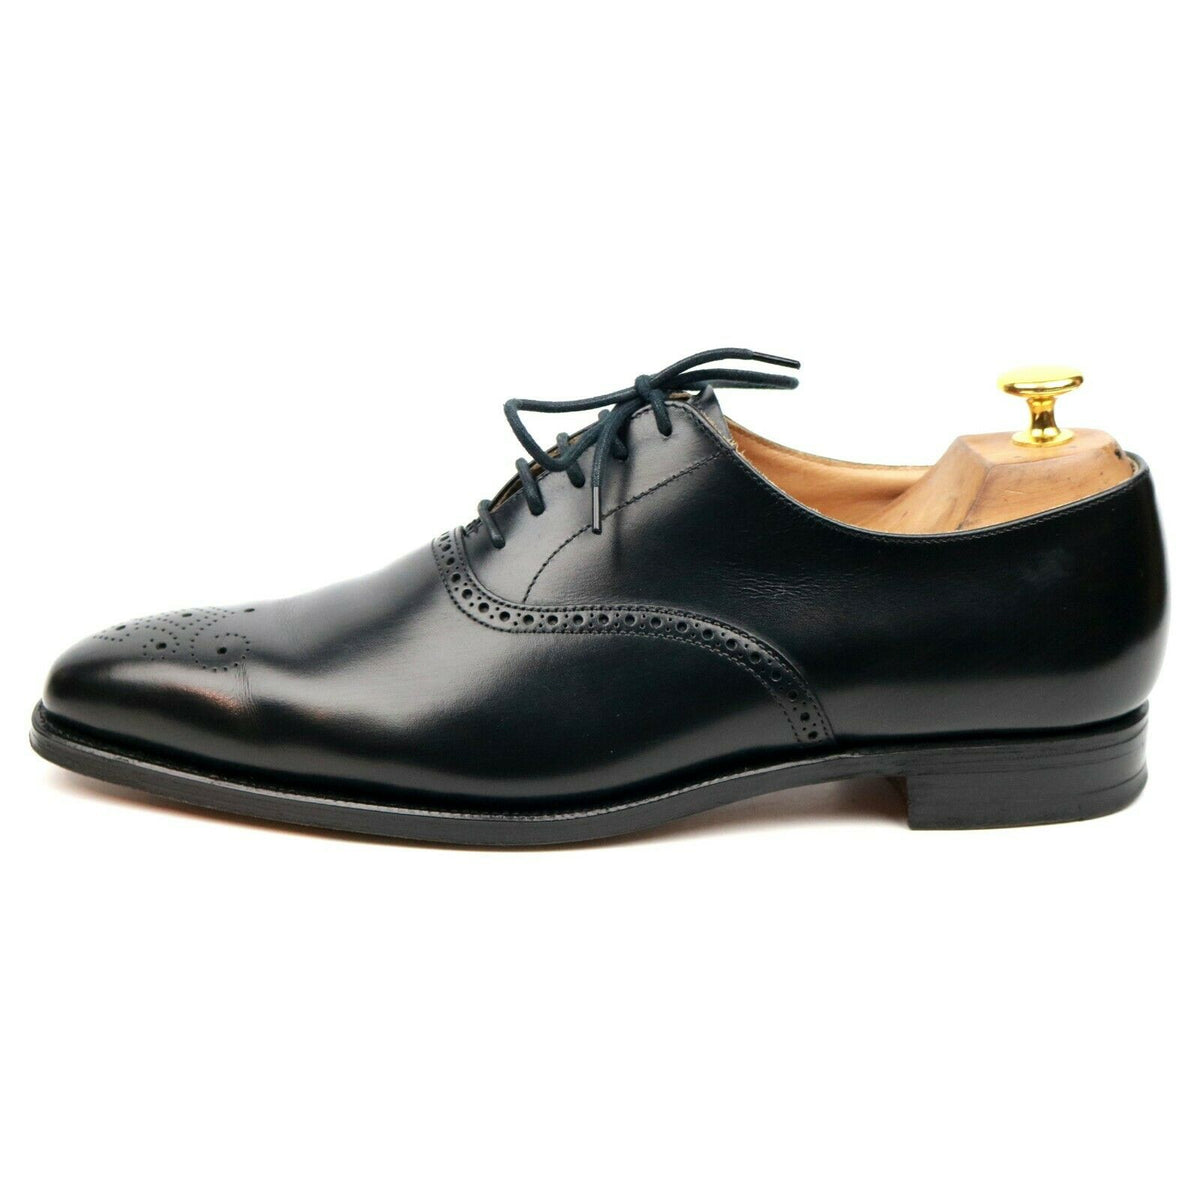 Crockett & Jones 'Edgware' Black Leather Oxford UK 7 E